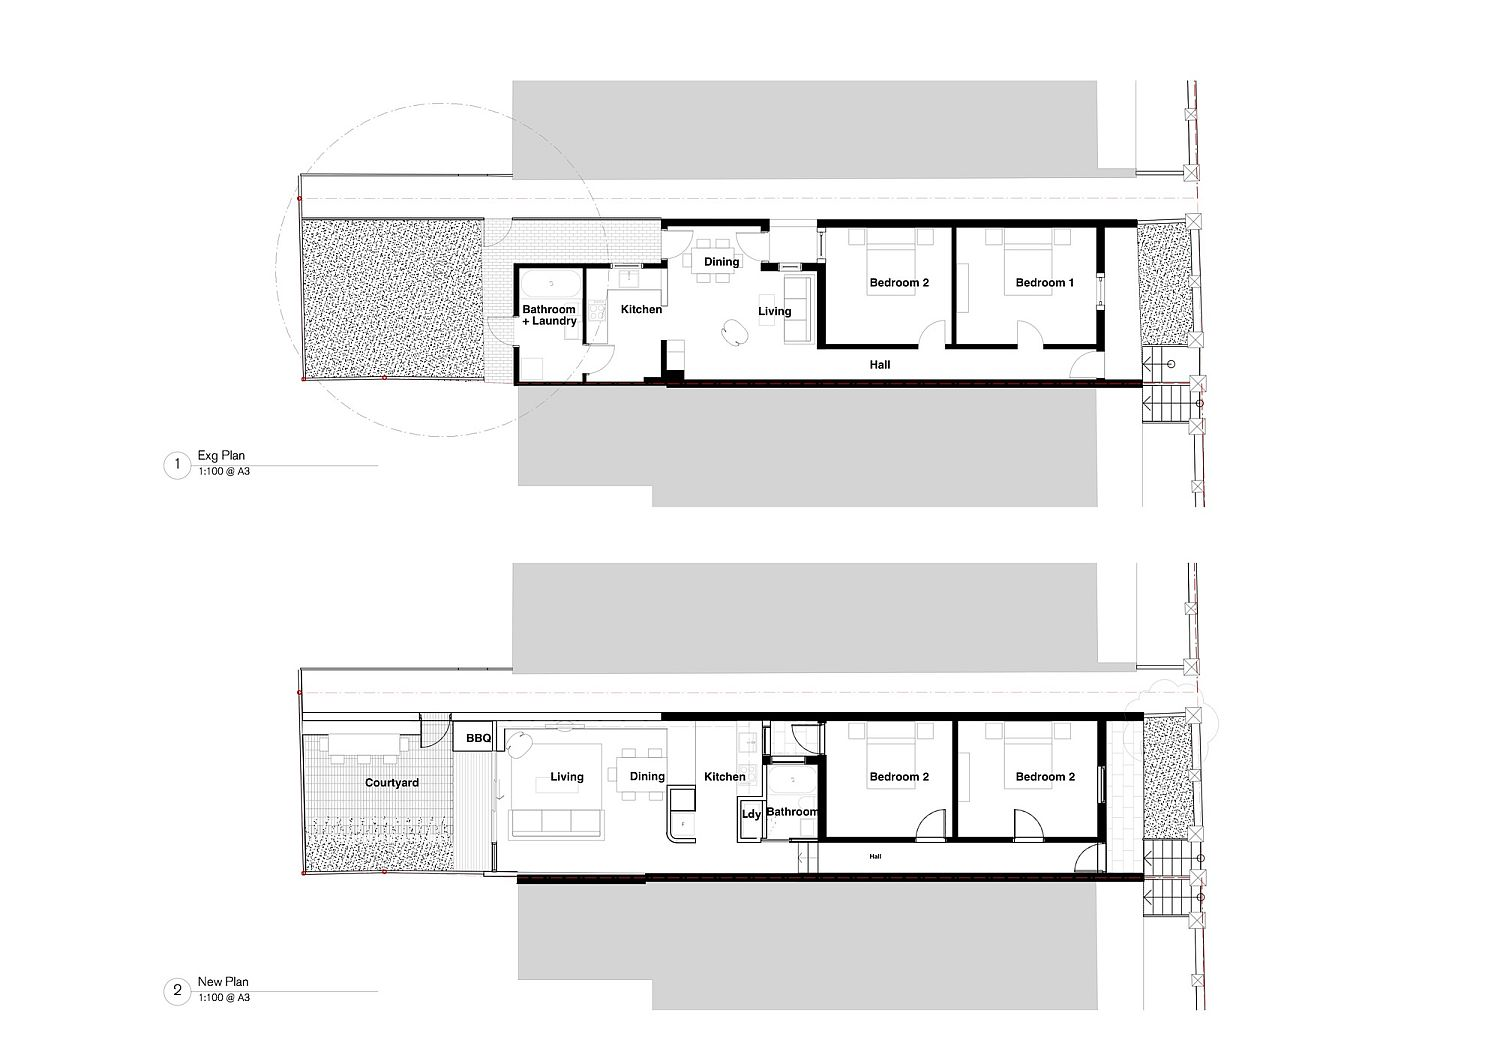 Floor plan of the Brick House before and after renovation